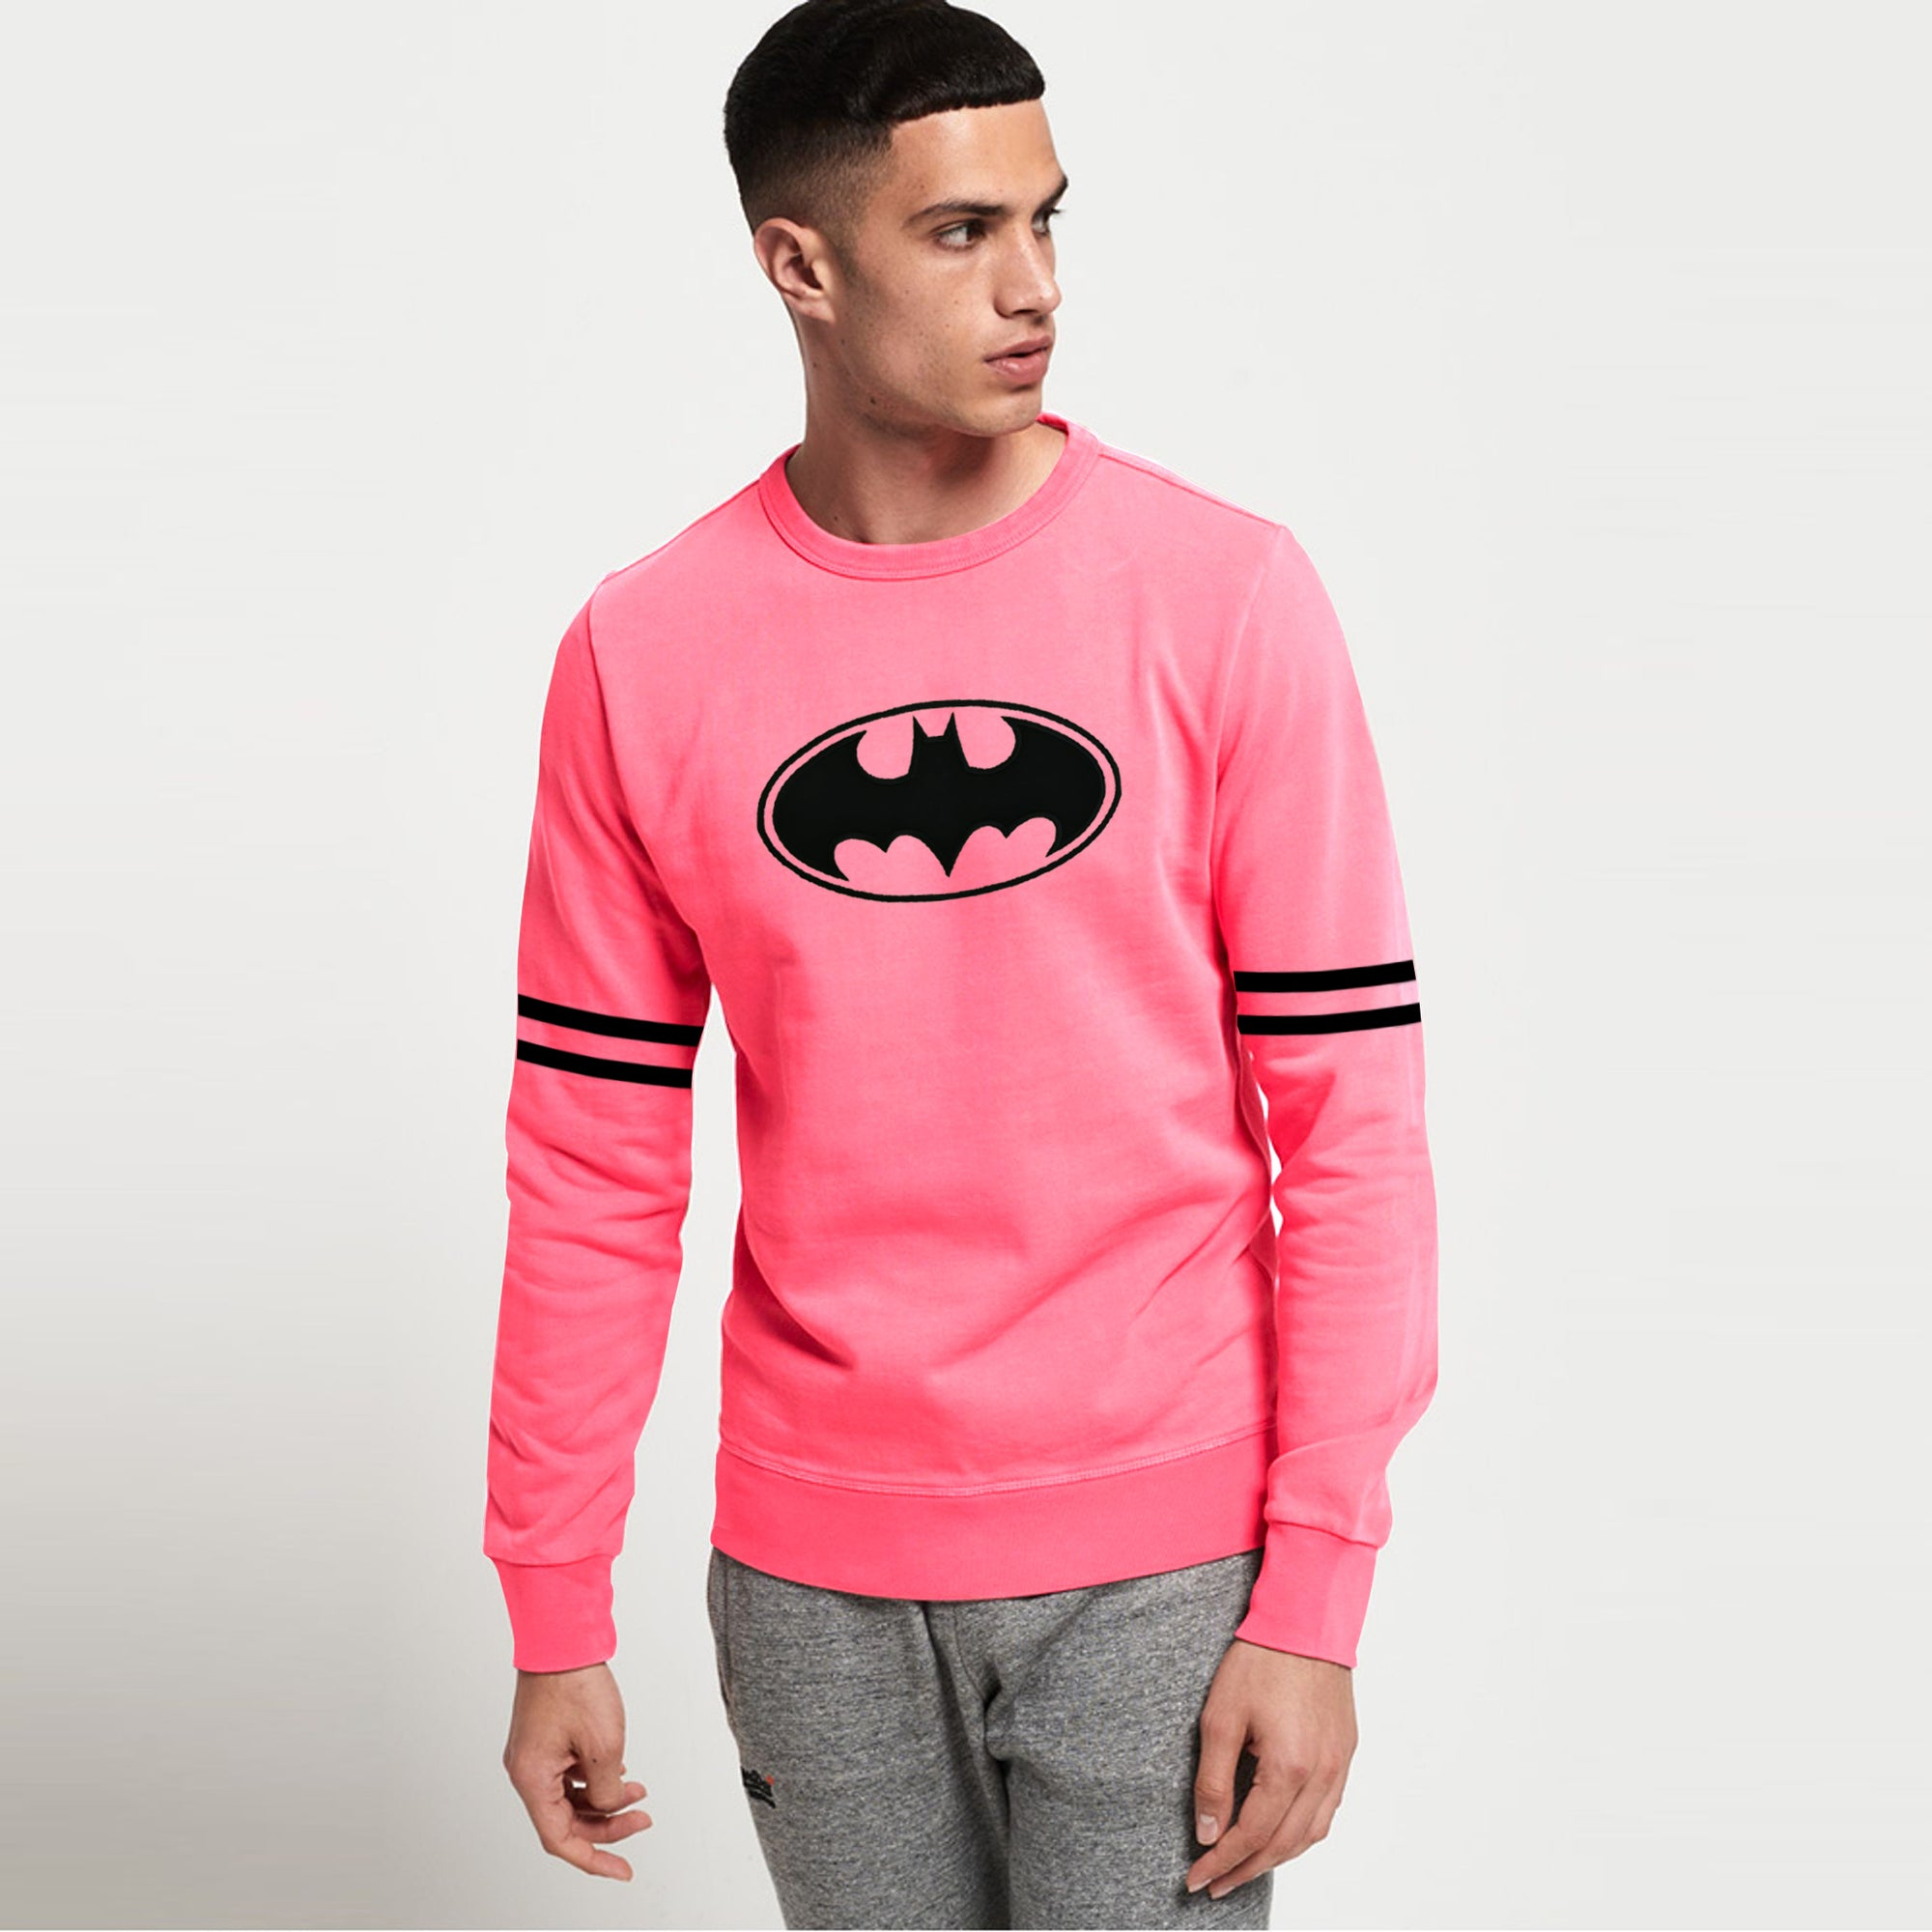 Copy of Six Flags Crew Neck Fleece Sweatshirt For Men-Pink-SP1121